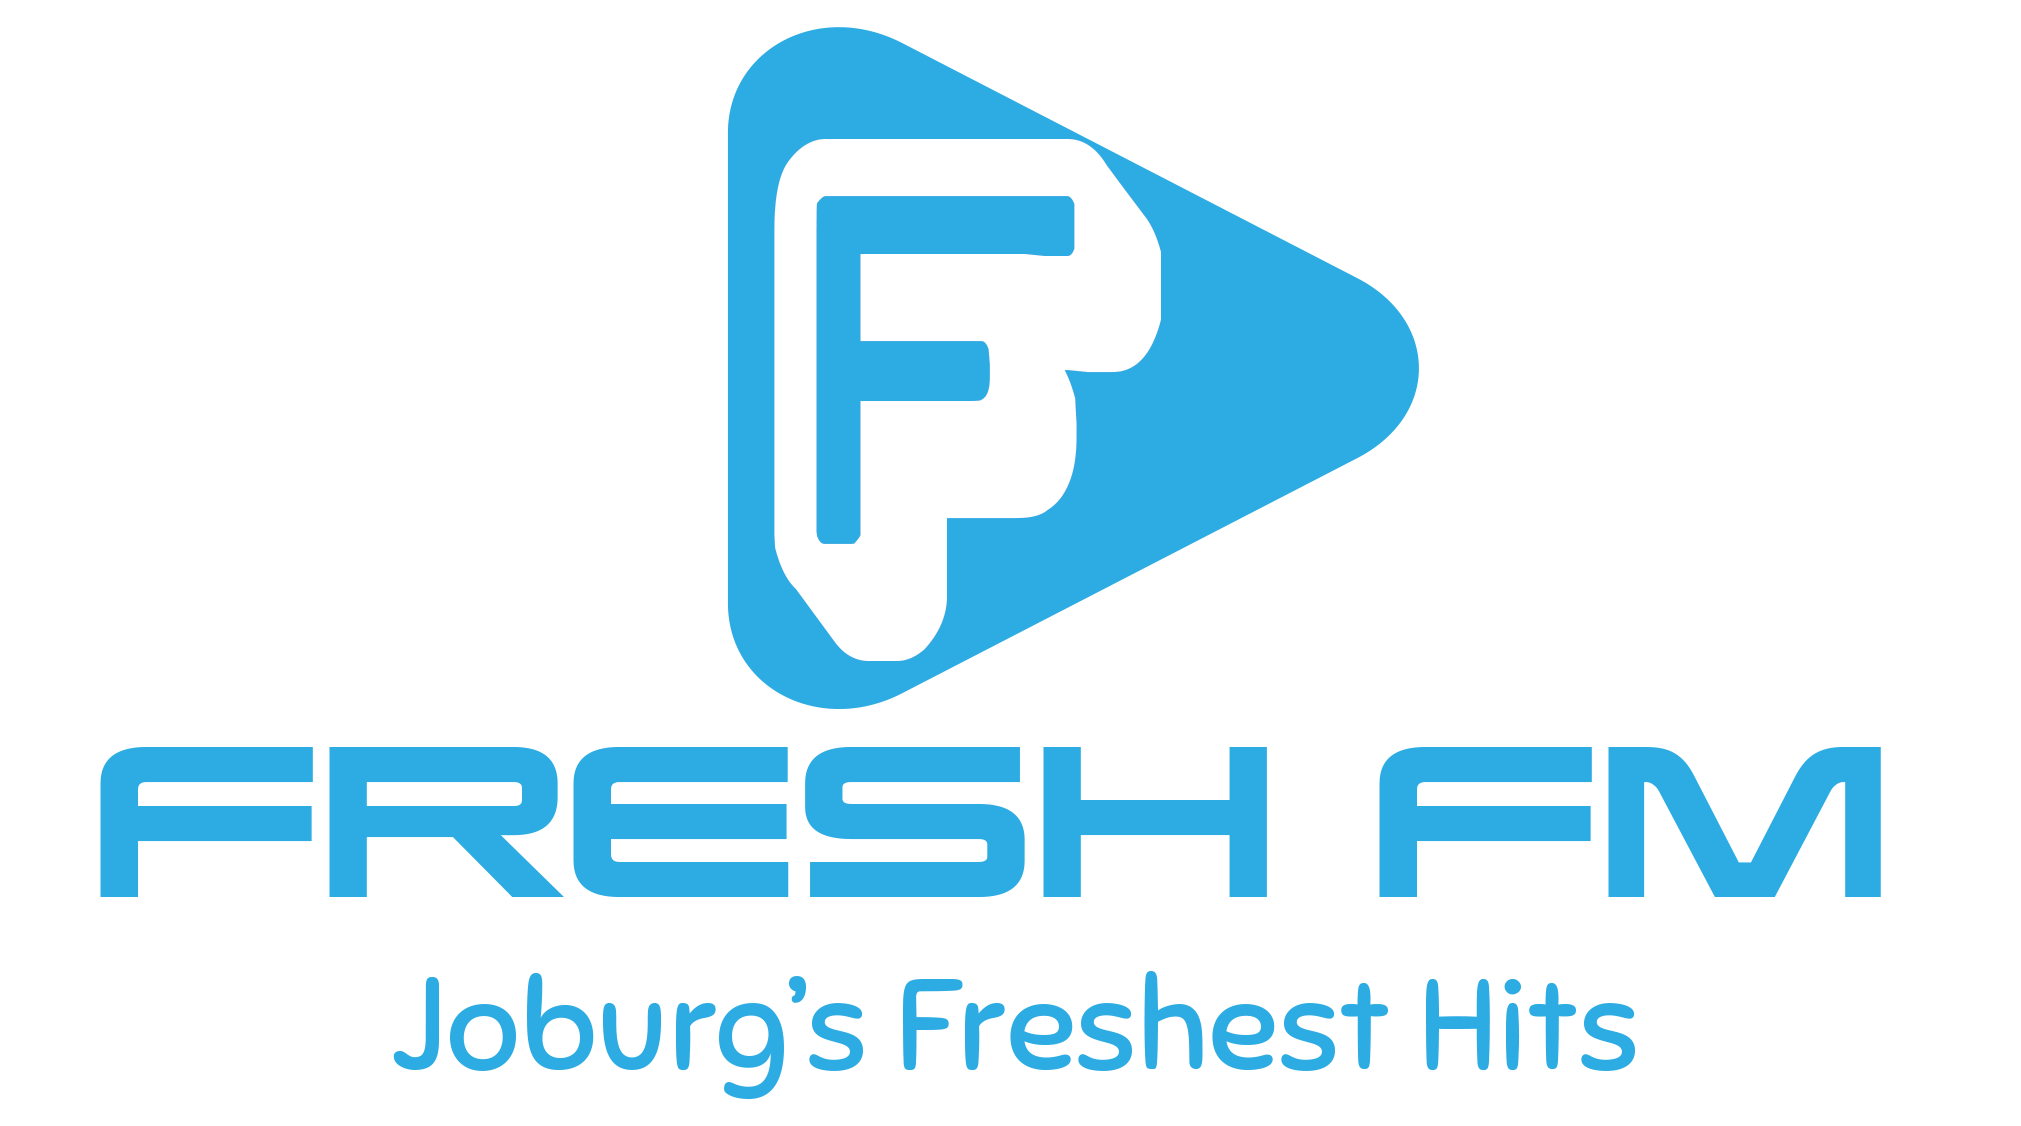 Here We Have Selected The Best Photos 947 Fresh FM WIAD